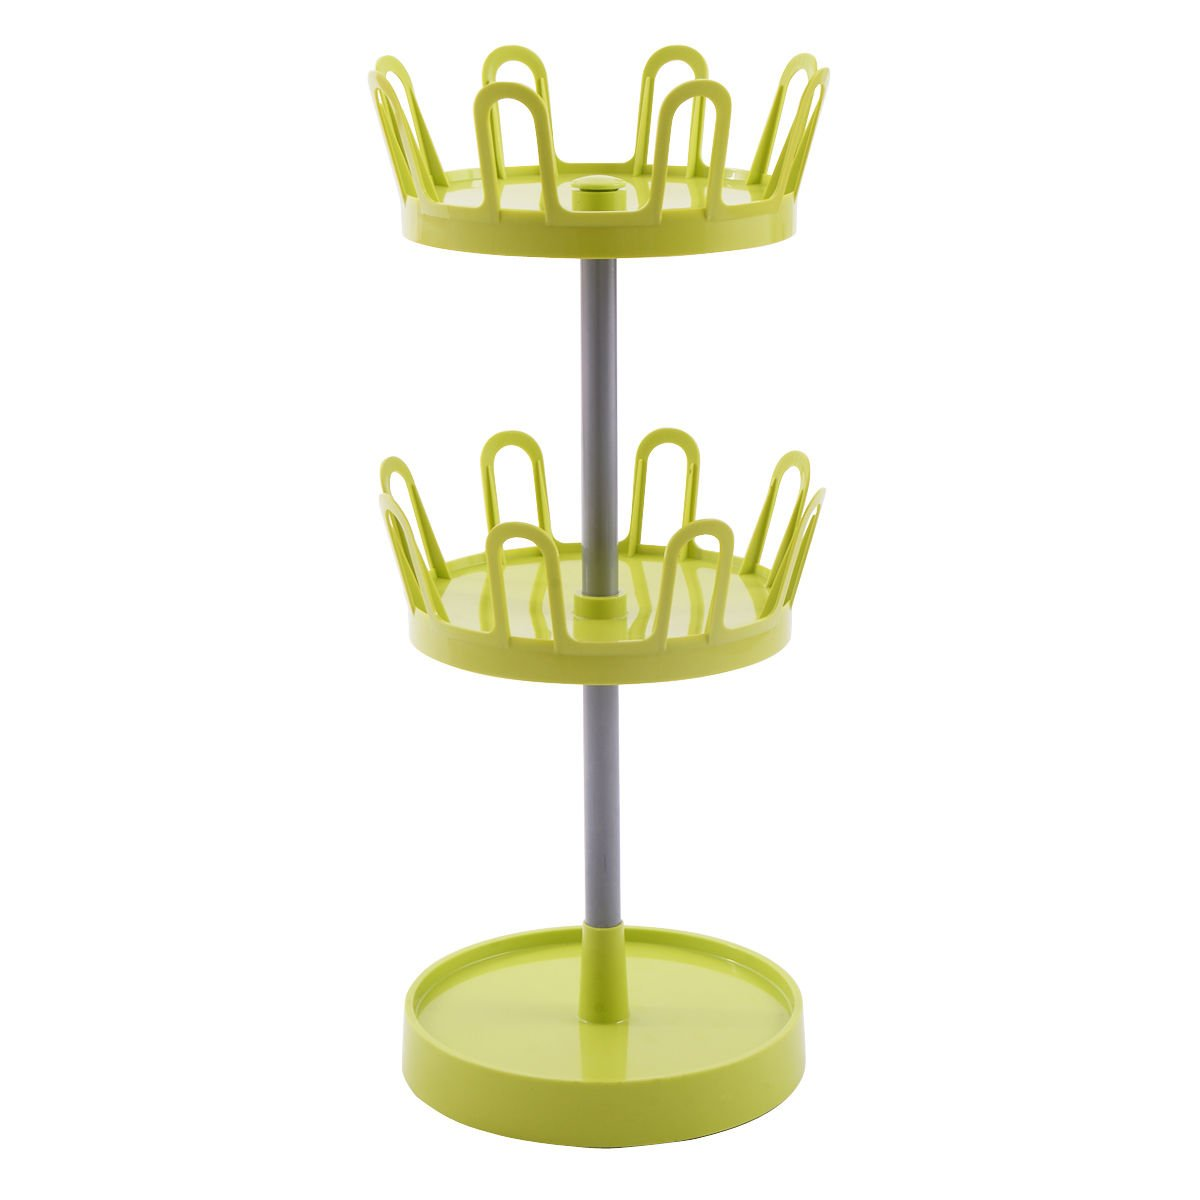 Shoe Rack Tree 2 Tier 8 Pairs Upright Revolving Organizer Stand Dorm Home Green